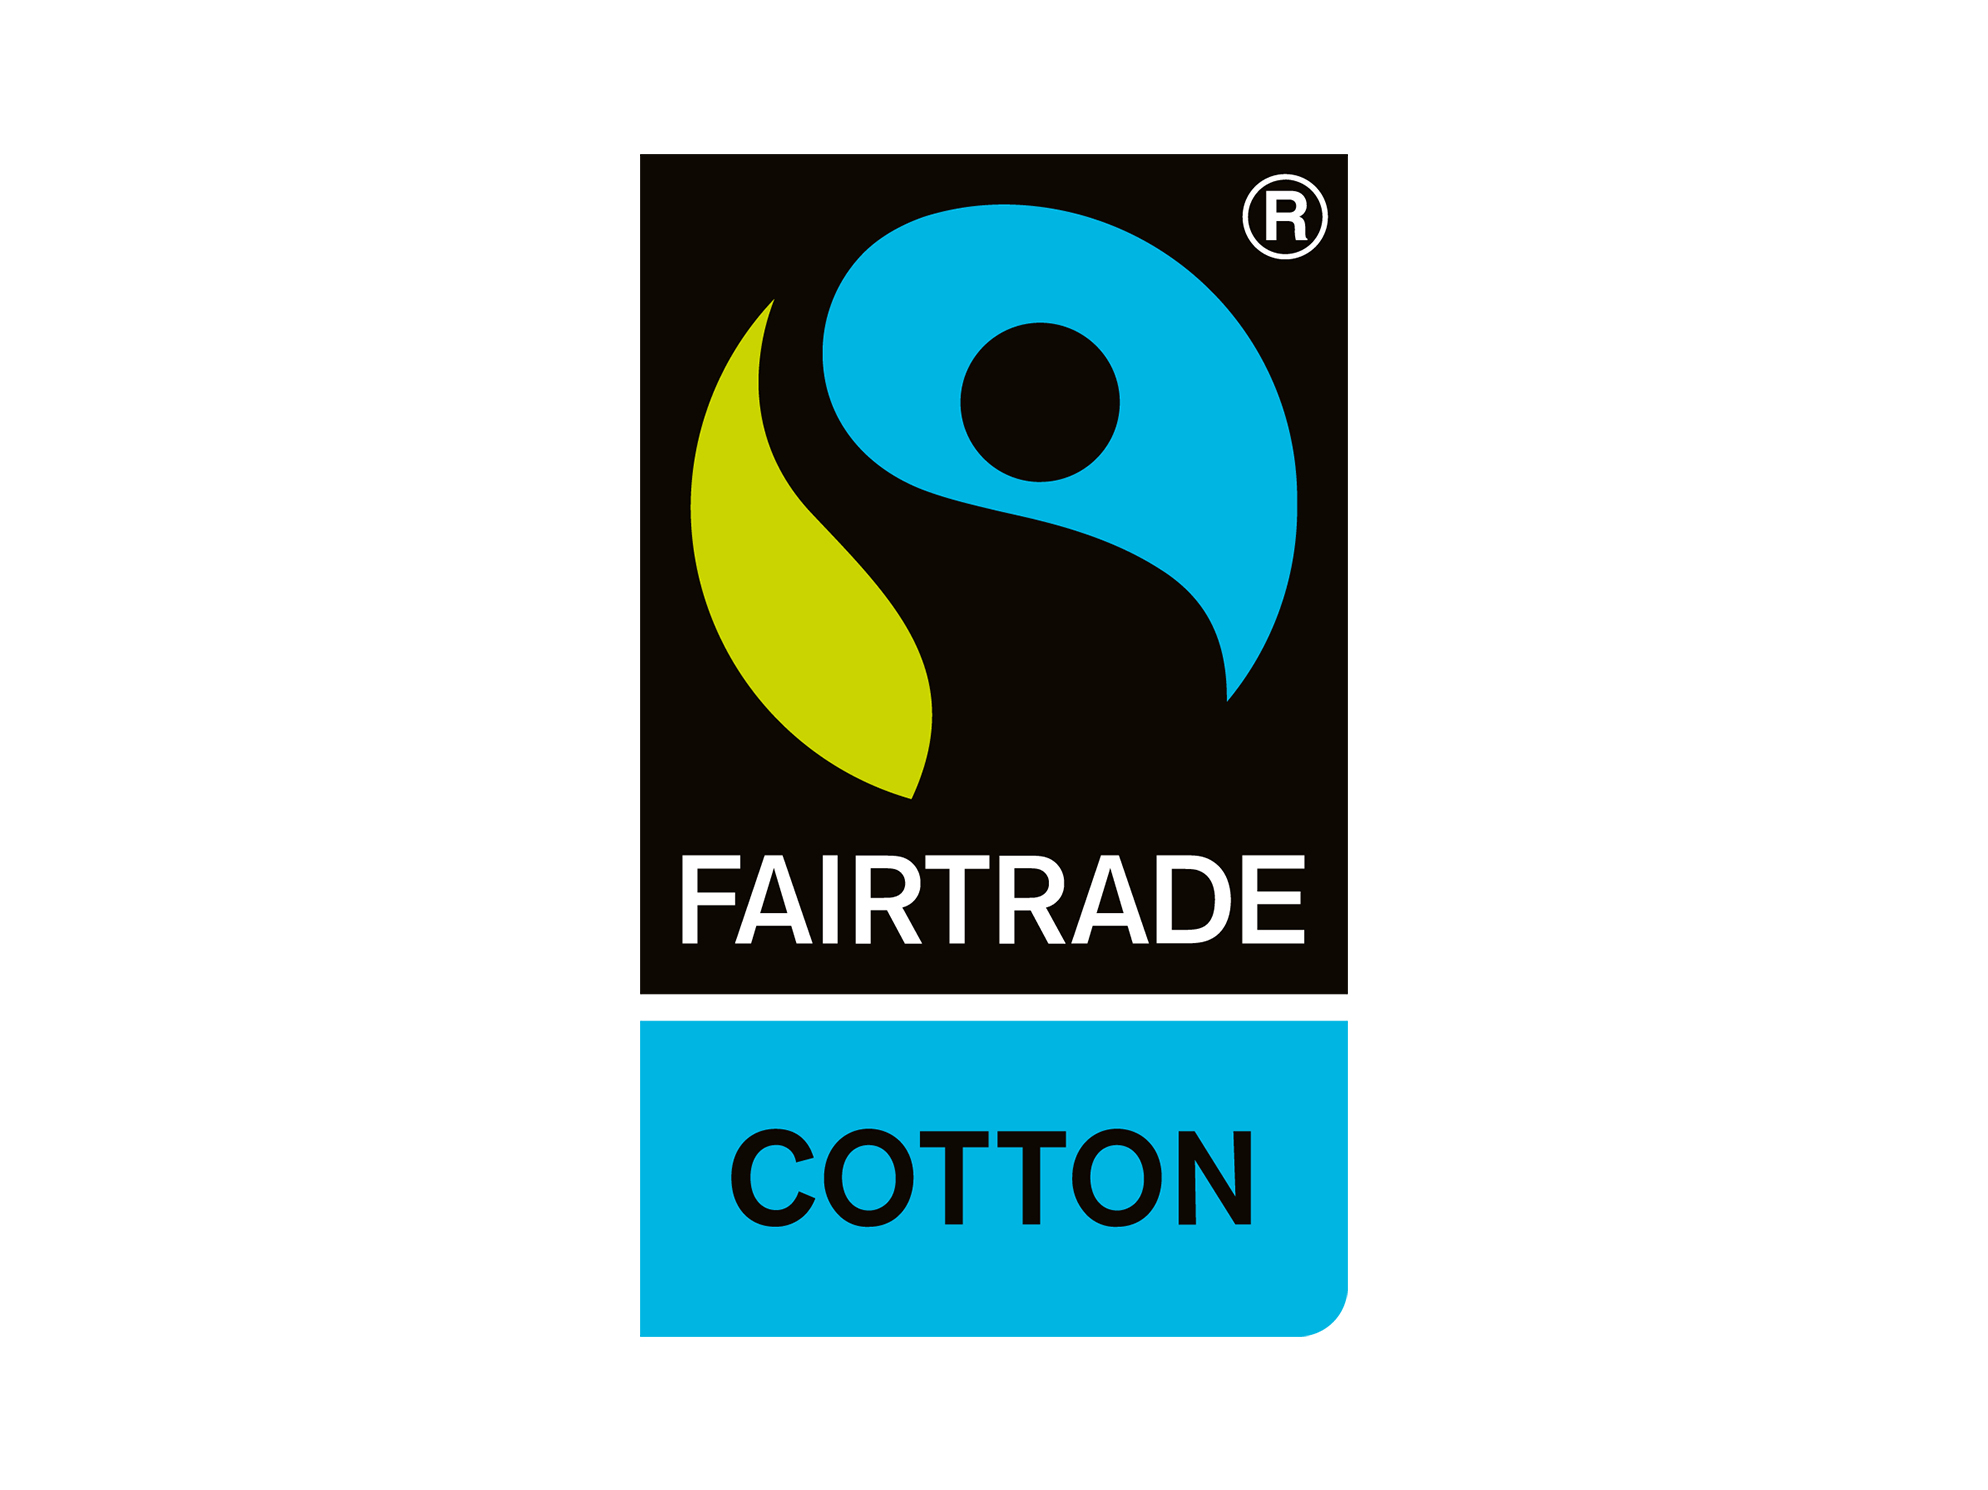 Fairtrade  Siegel für Fairen Handel